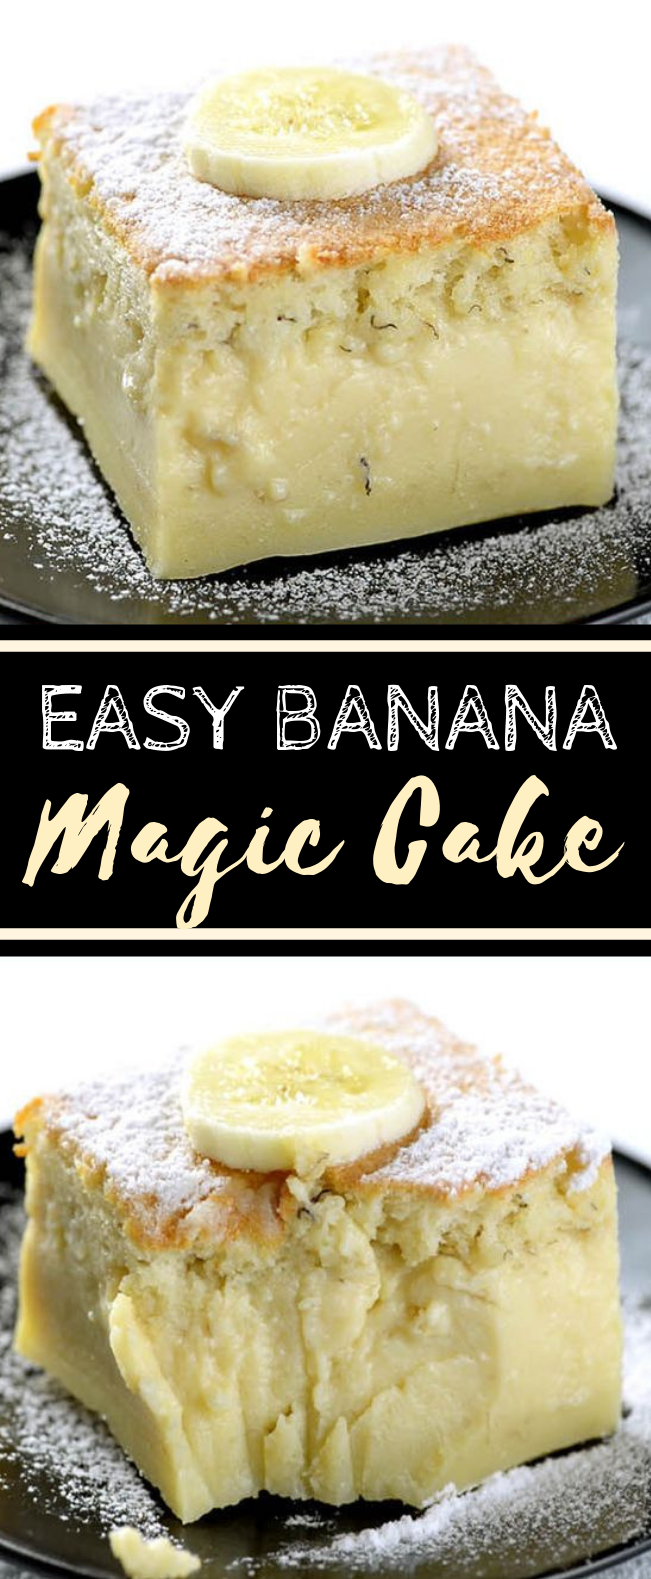 Easy Banana Magic Cake #dessert #cake